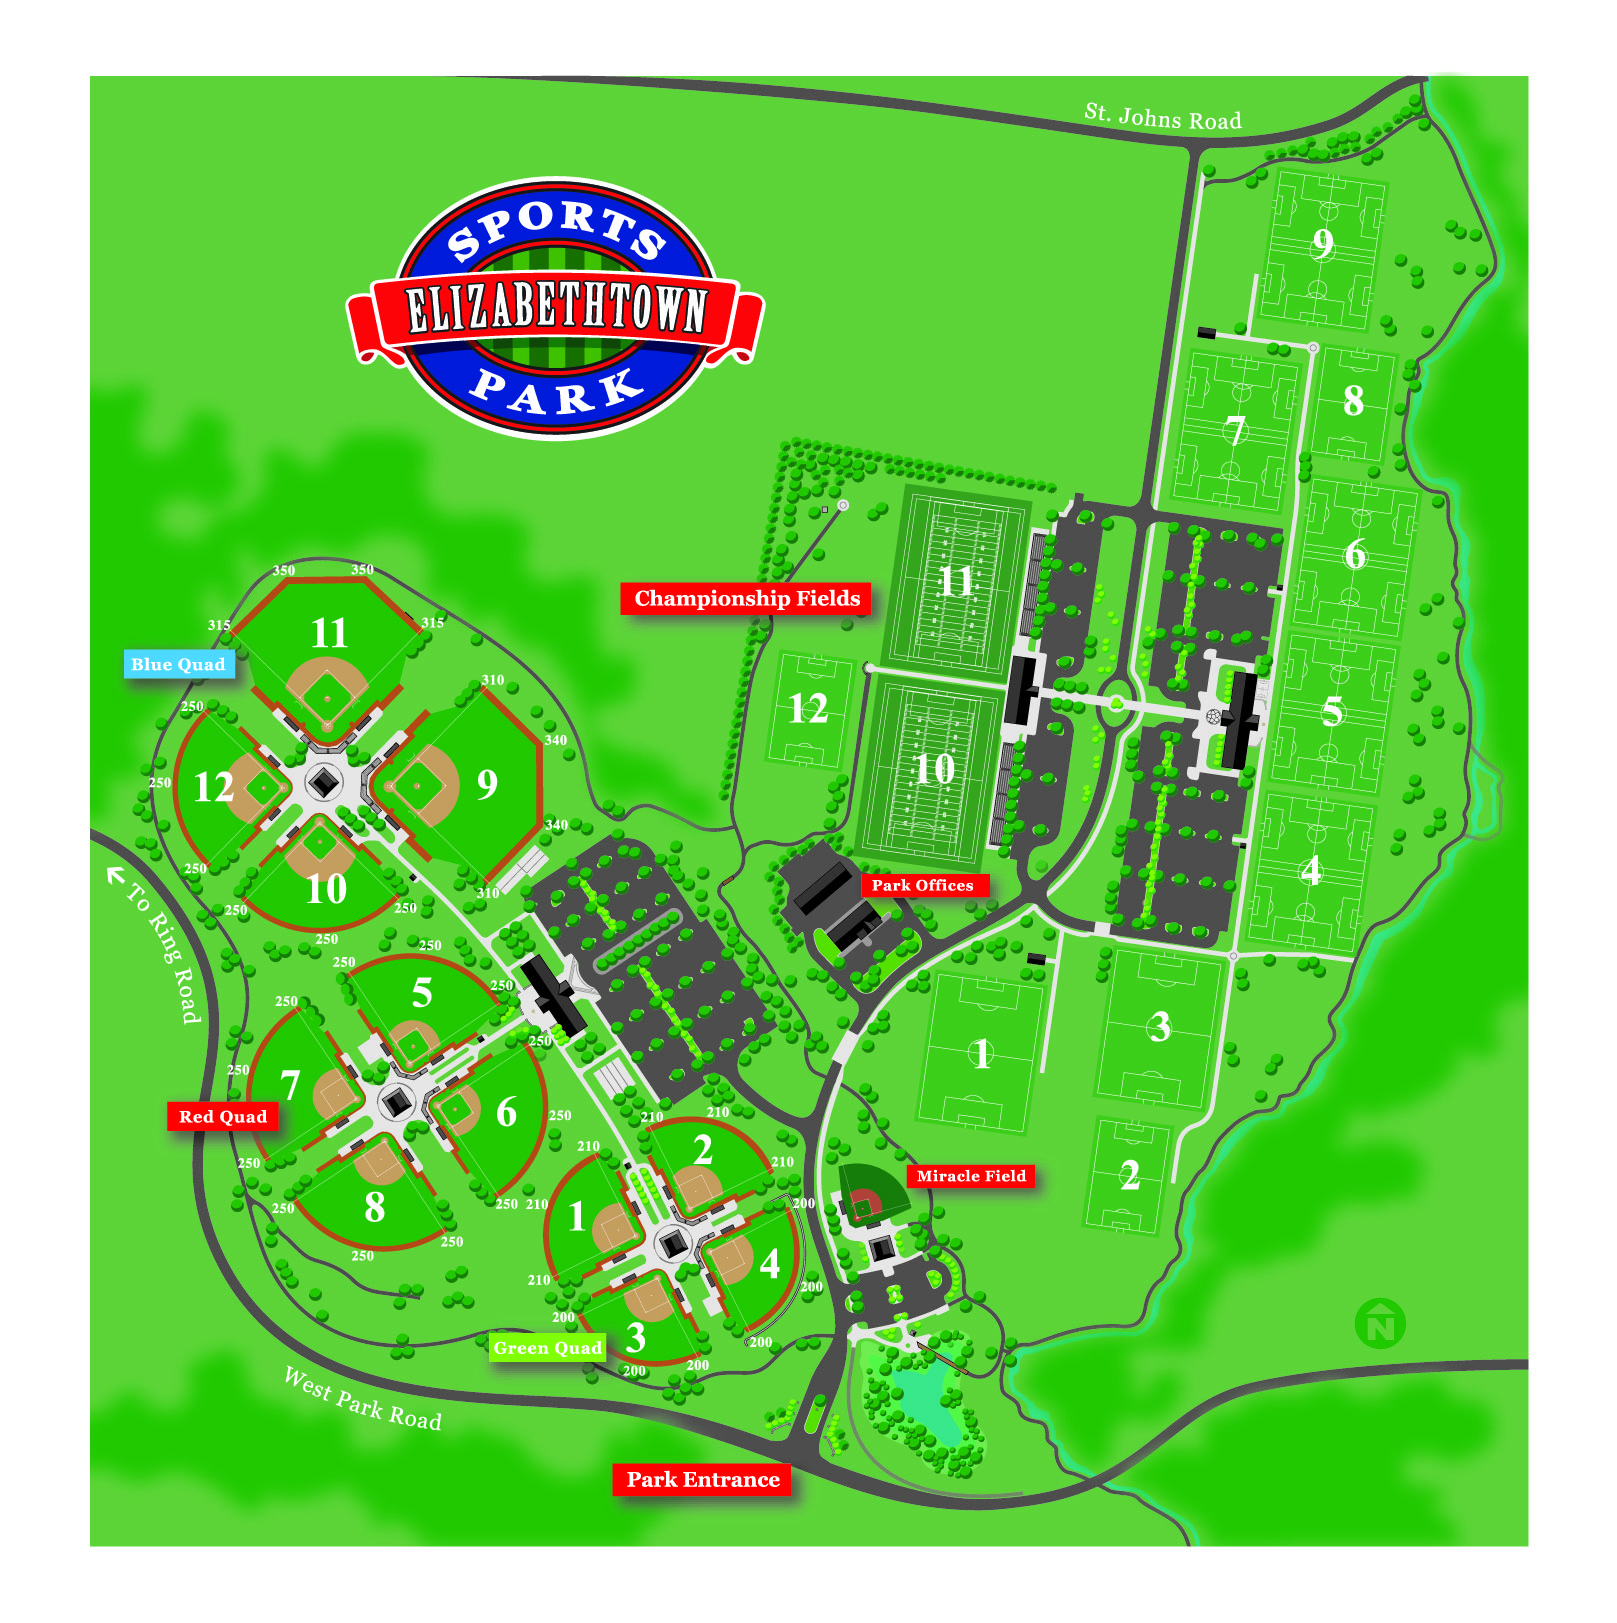 Sports Park Field Map 28 Images Temecula Ca